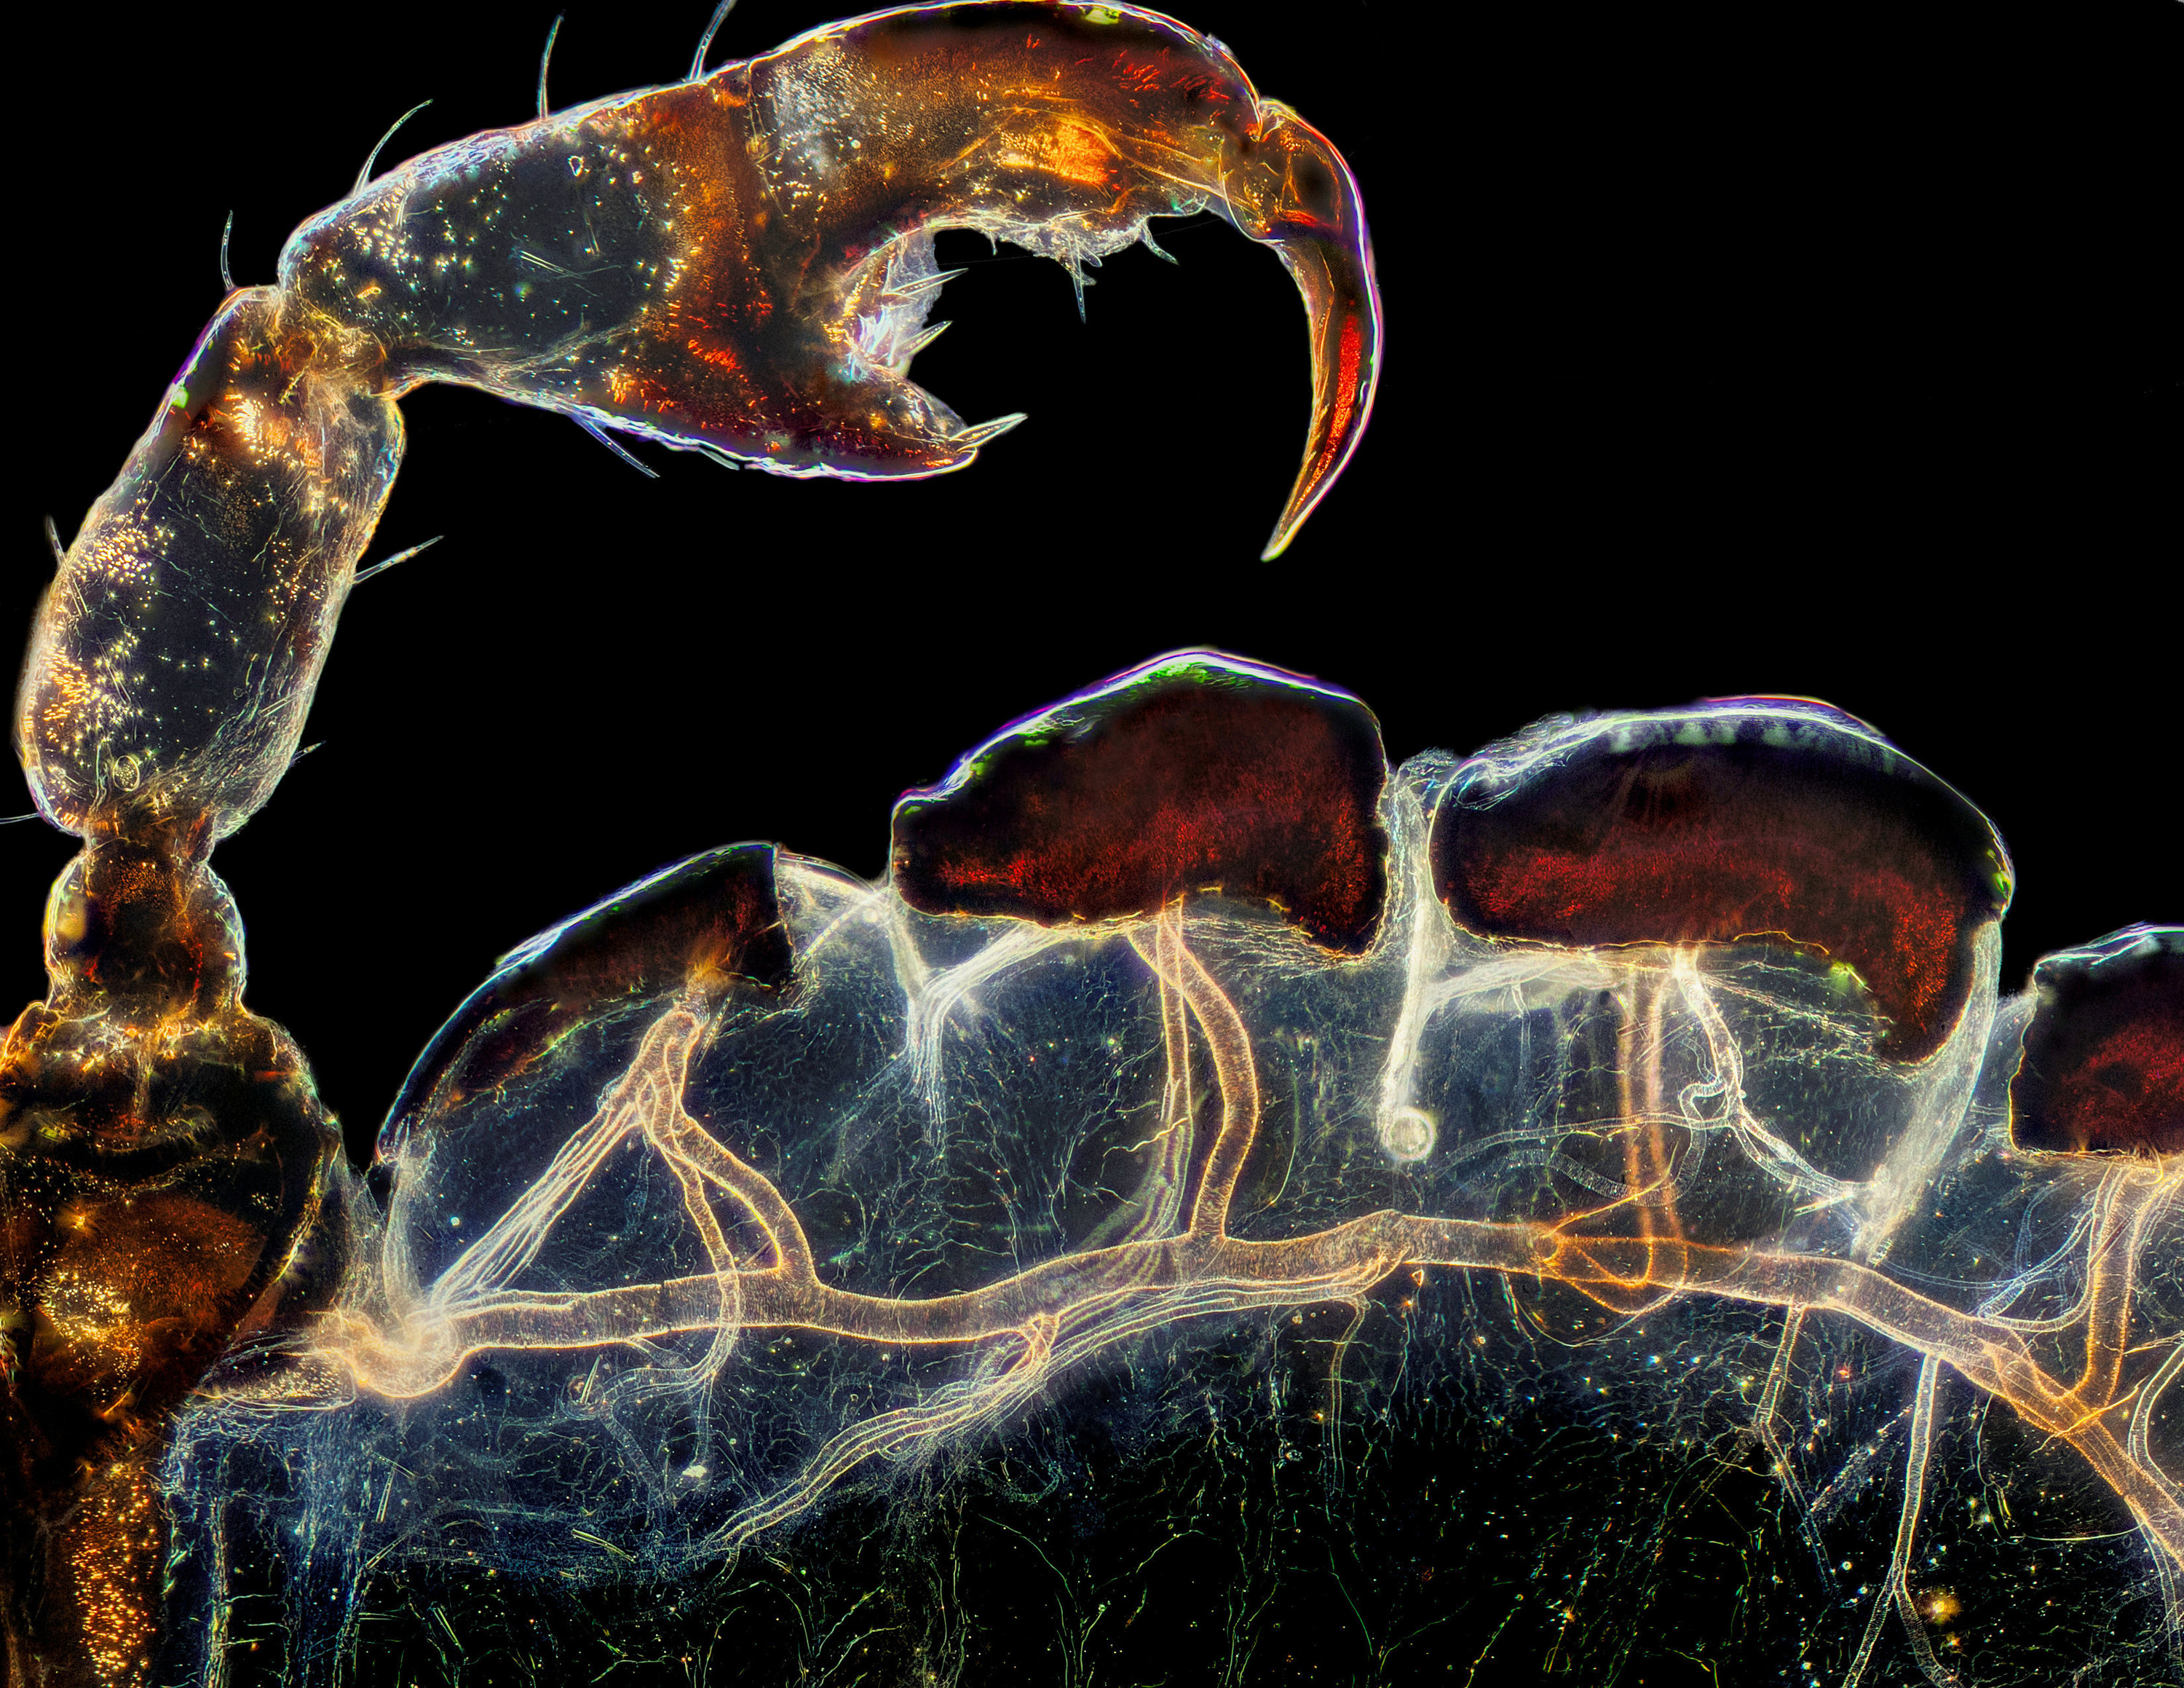 A claw of a small crab louse that has been magnified many times